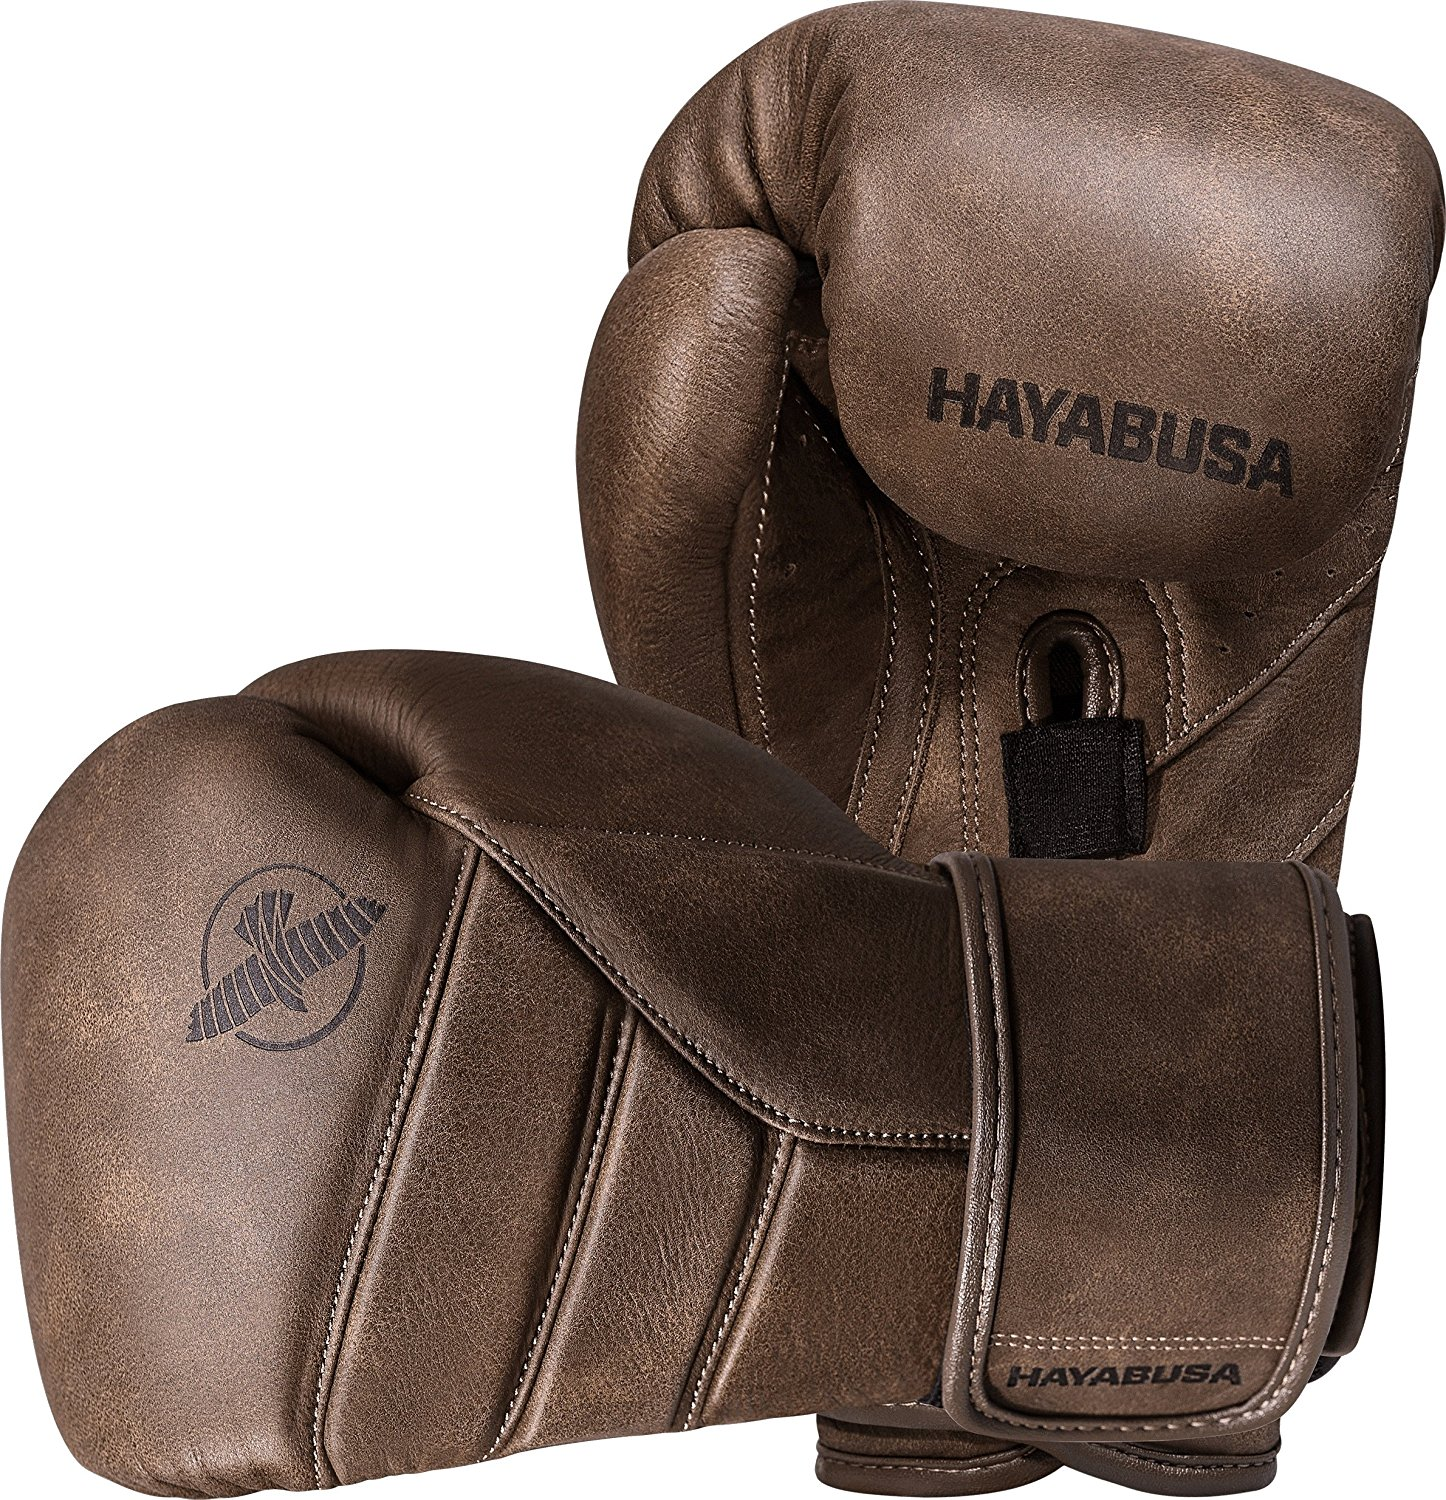 Looking for These 5 Best Heavy Bag Gloves to Use? 5